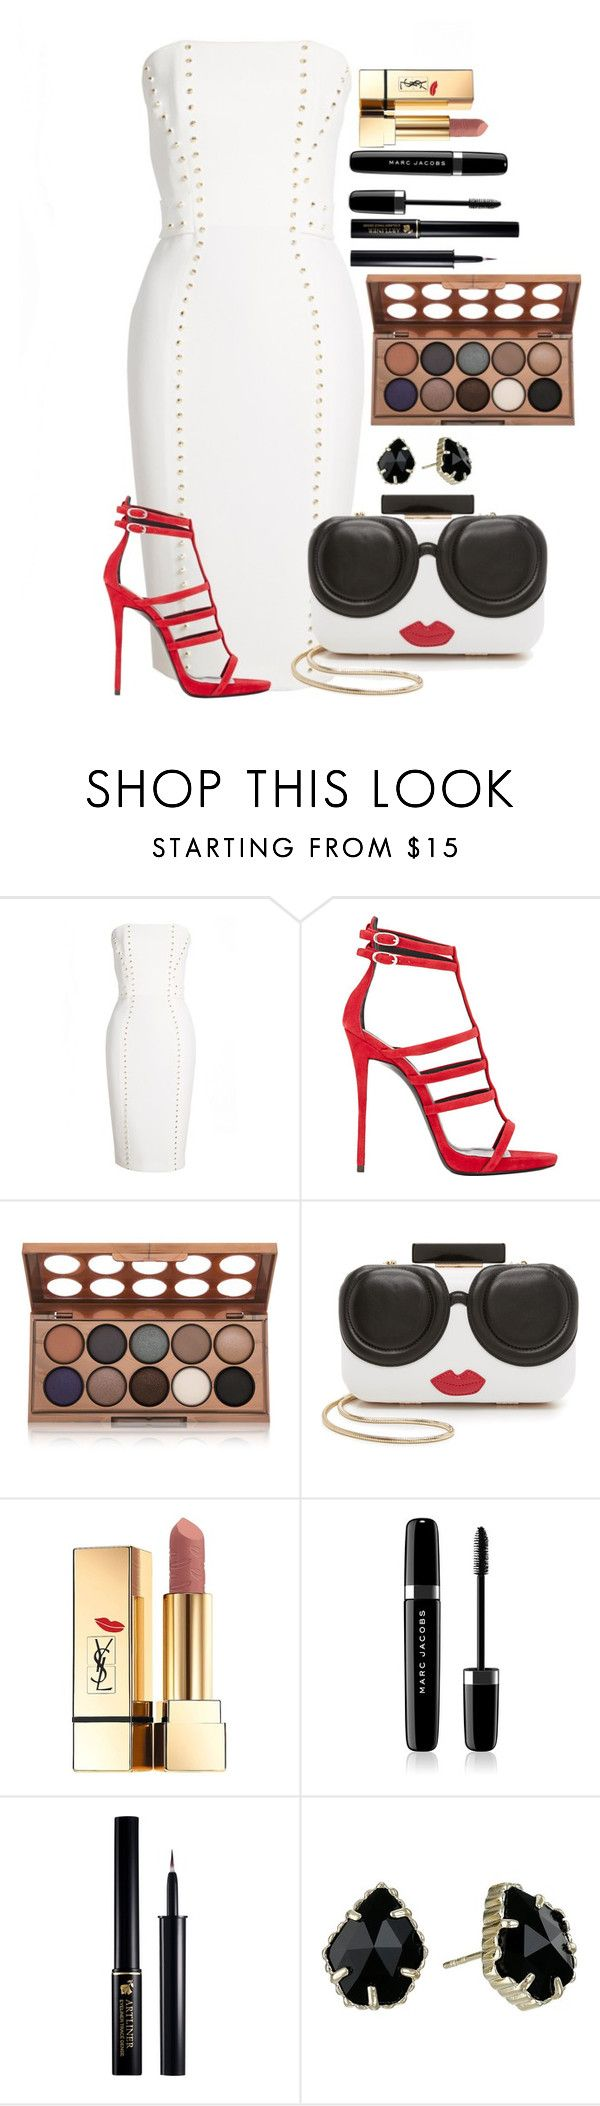 """Untitled #1467"" by fabianarveloc on Polyvore featuring Versace, Giuseppe Zanotti, NYX, Alice + Olivia, Yves Saint Laurent, Marc Jacobs, Lancôme and Kendra Scott"